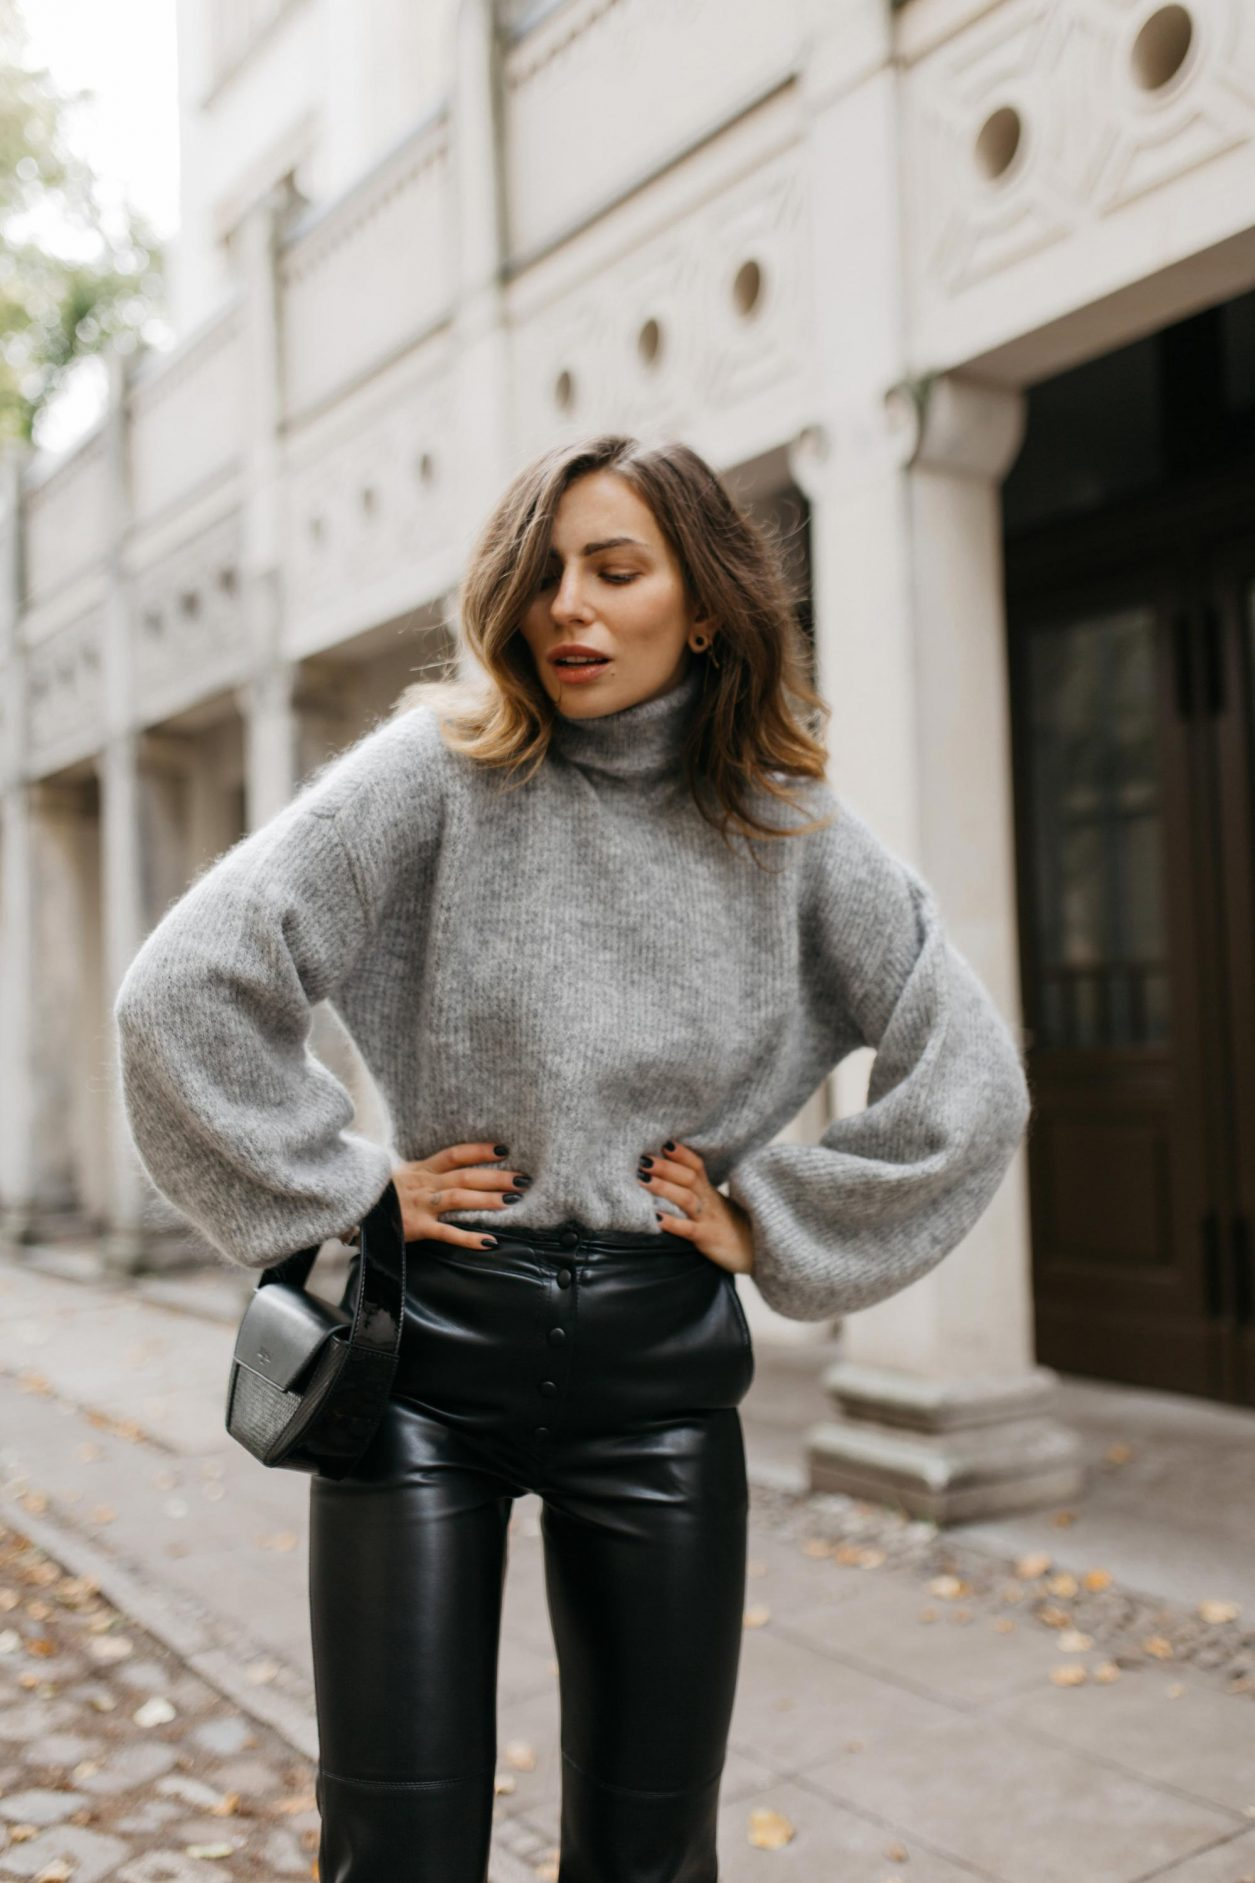 AW19 Streetstyle by Masha Sedgwick, wearing Leather Pants: Nanushka Knit: Gestuz Jacket: Samsoe Samsoe Bag: Lili Radu  Slingbacks: Charles Keith